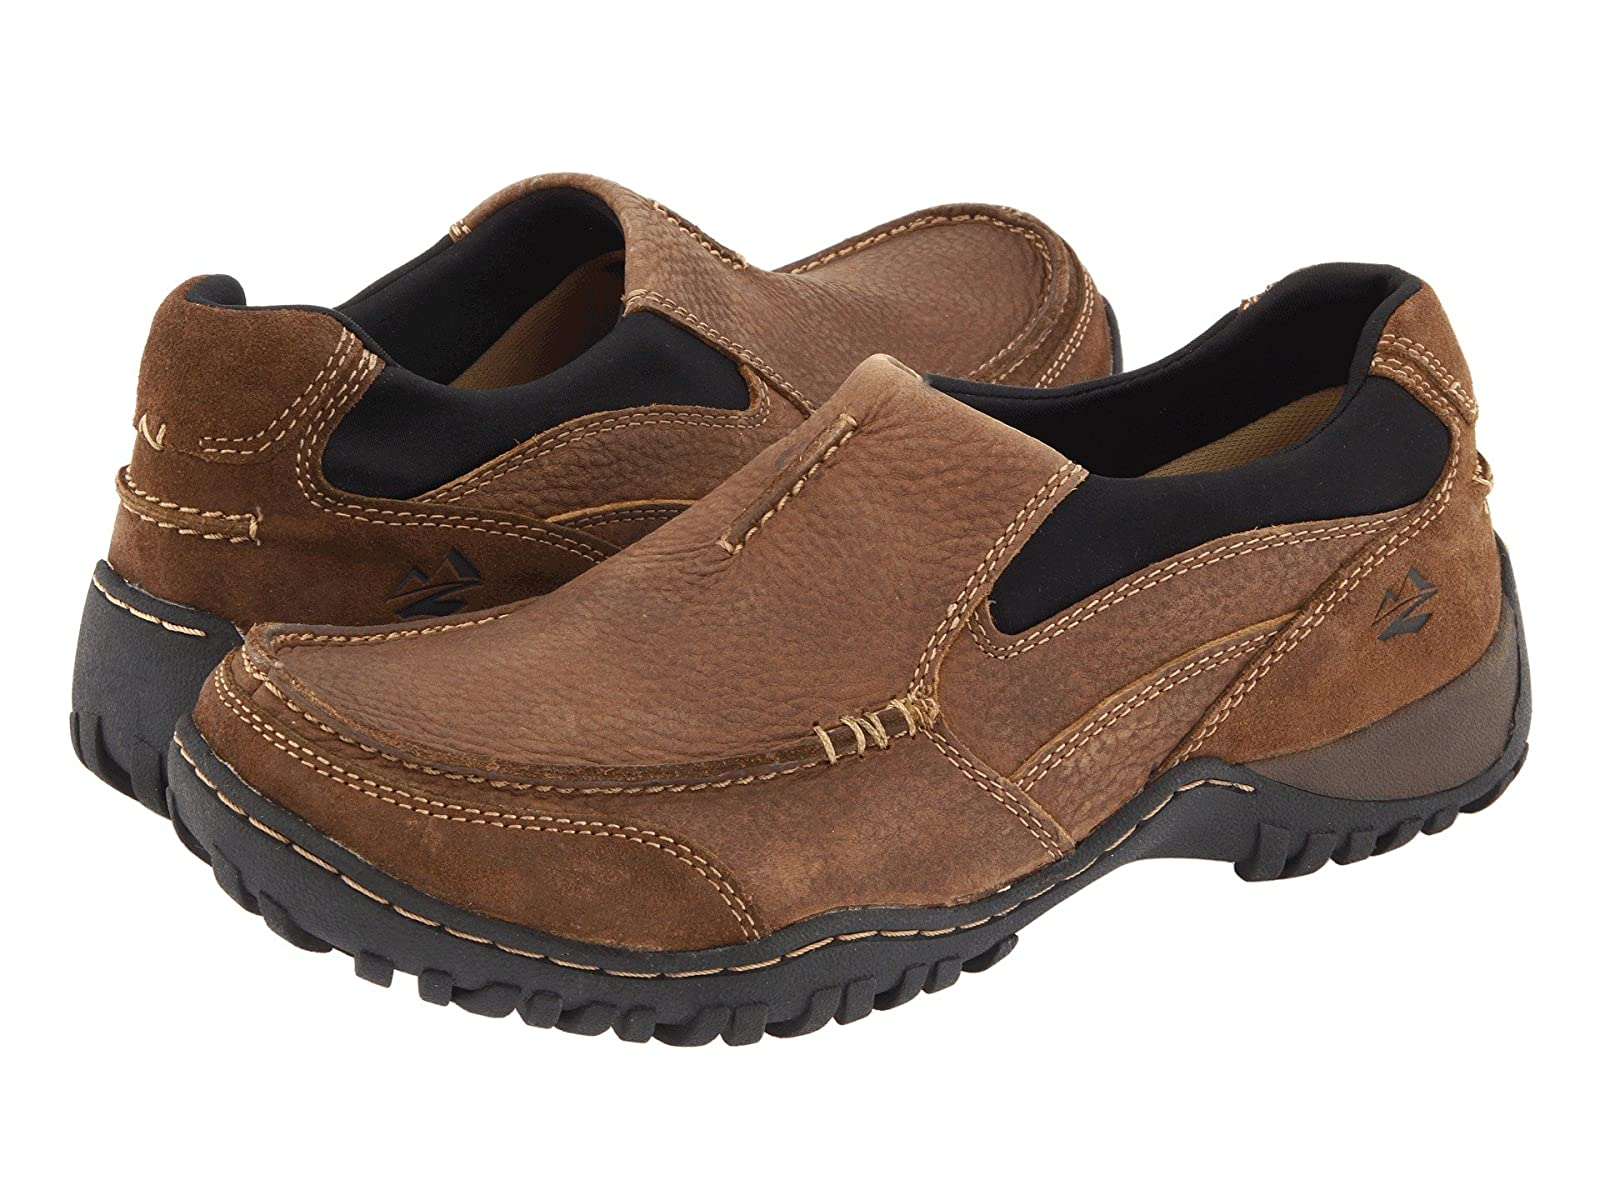 Nunn Bush Portage Slip-On Casual All Terrain ComfortAtmospheric grades have affordable shoes